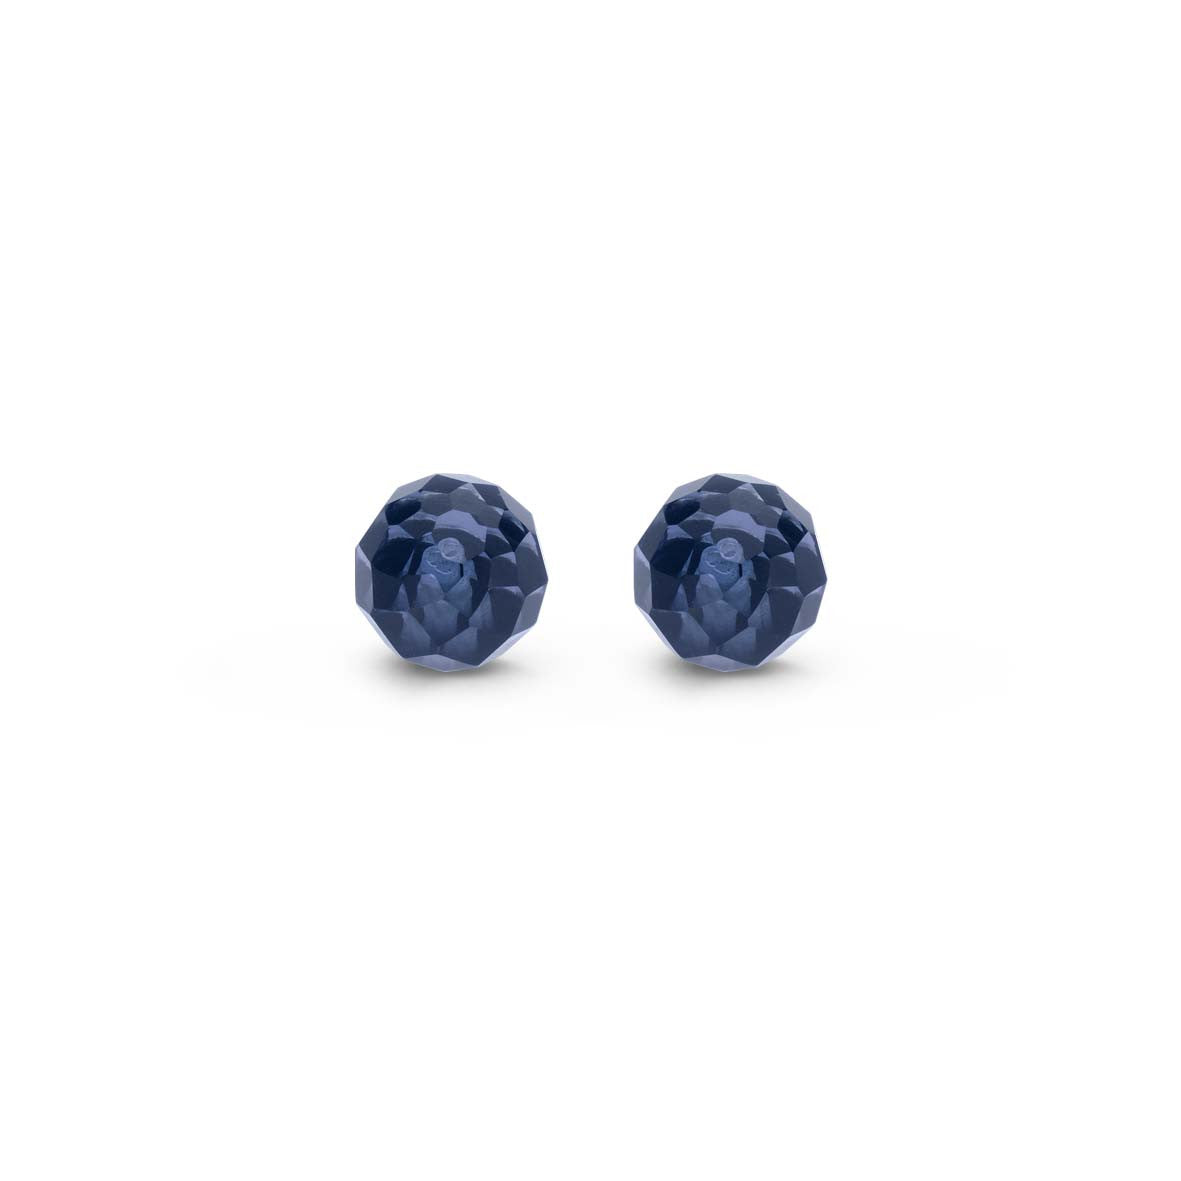 Ti Sento Earrings Silver And Blue Cubic Zirconia Ball Stud